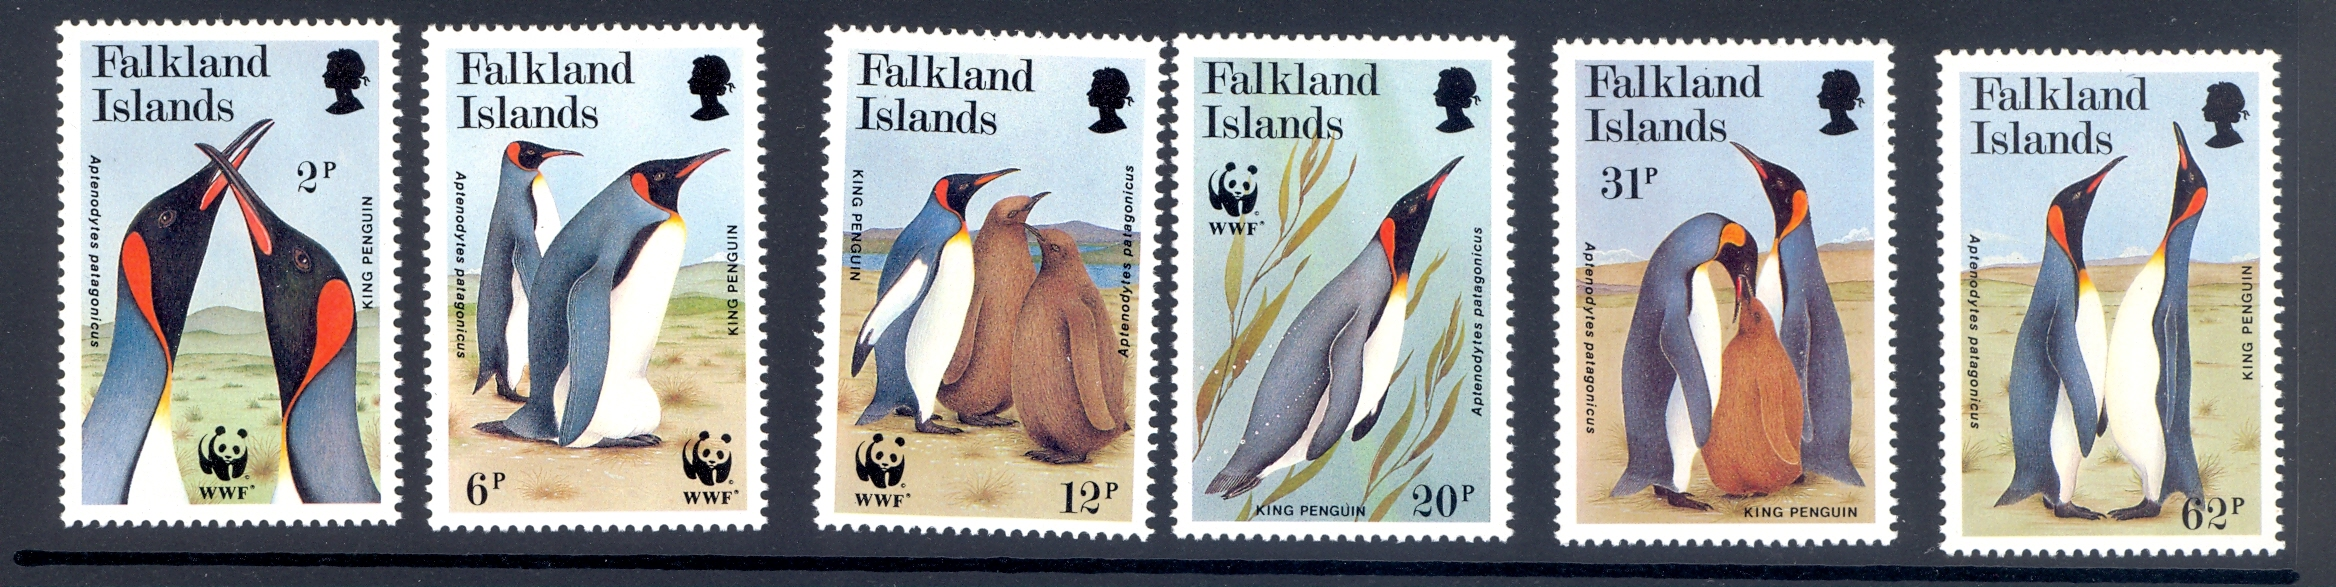 Falkland Islands SG 633-8 Endangered Species set from 1991 MNH